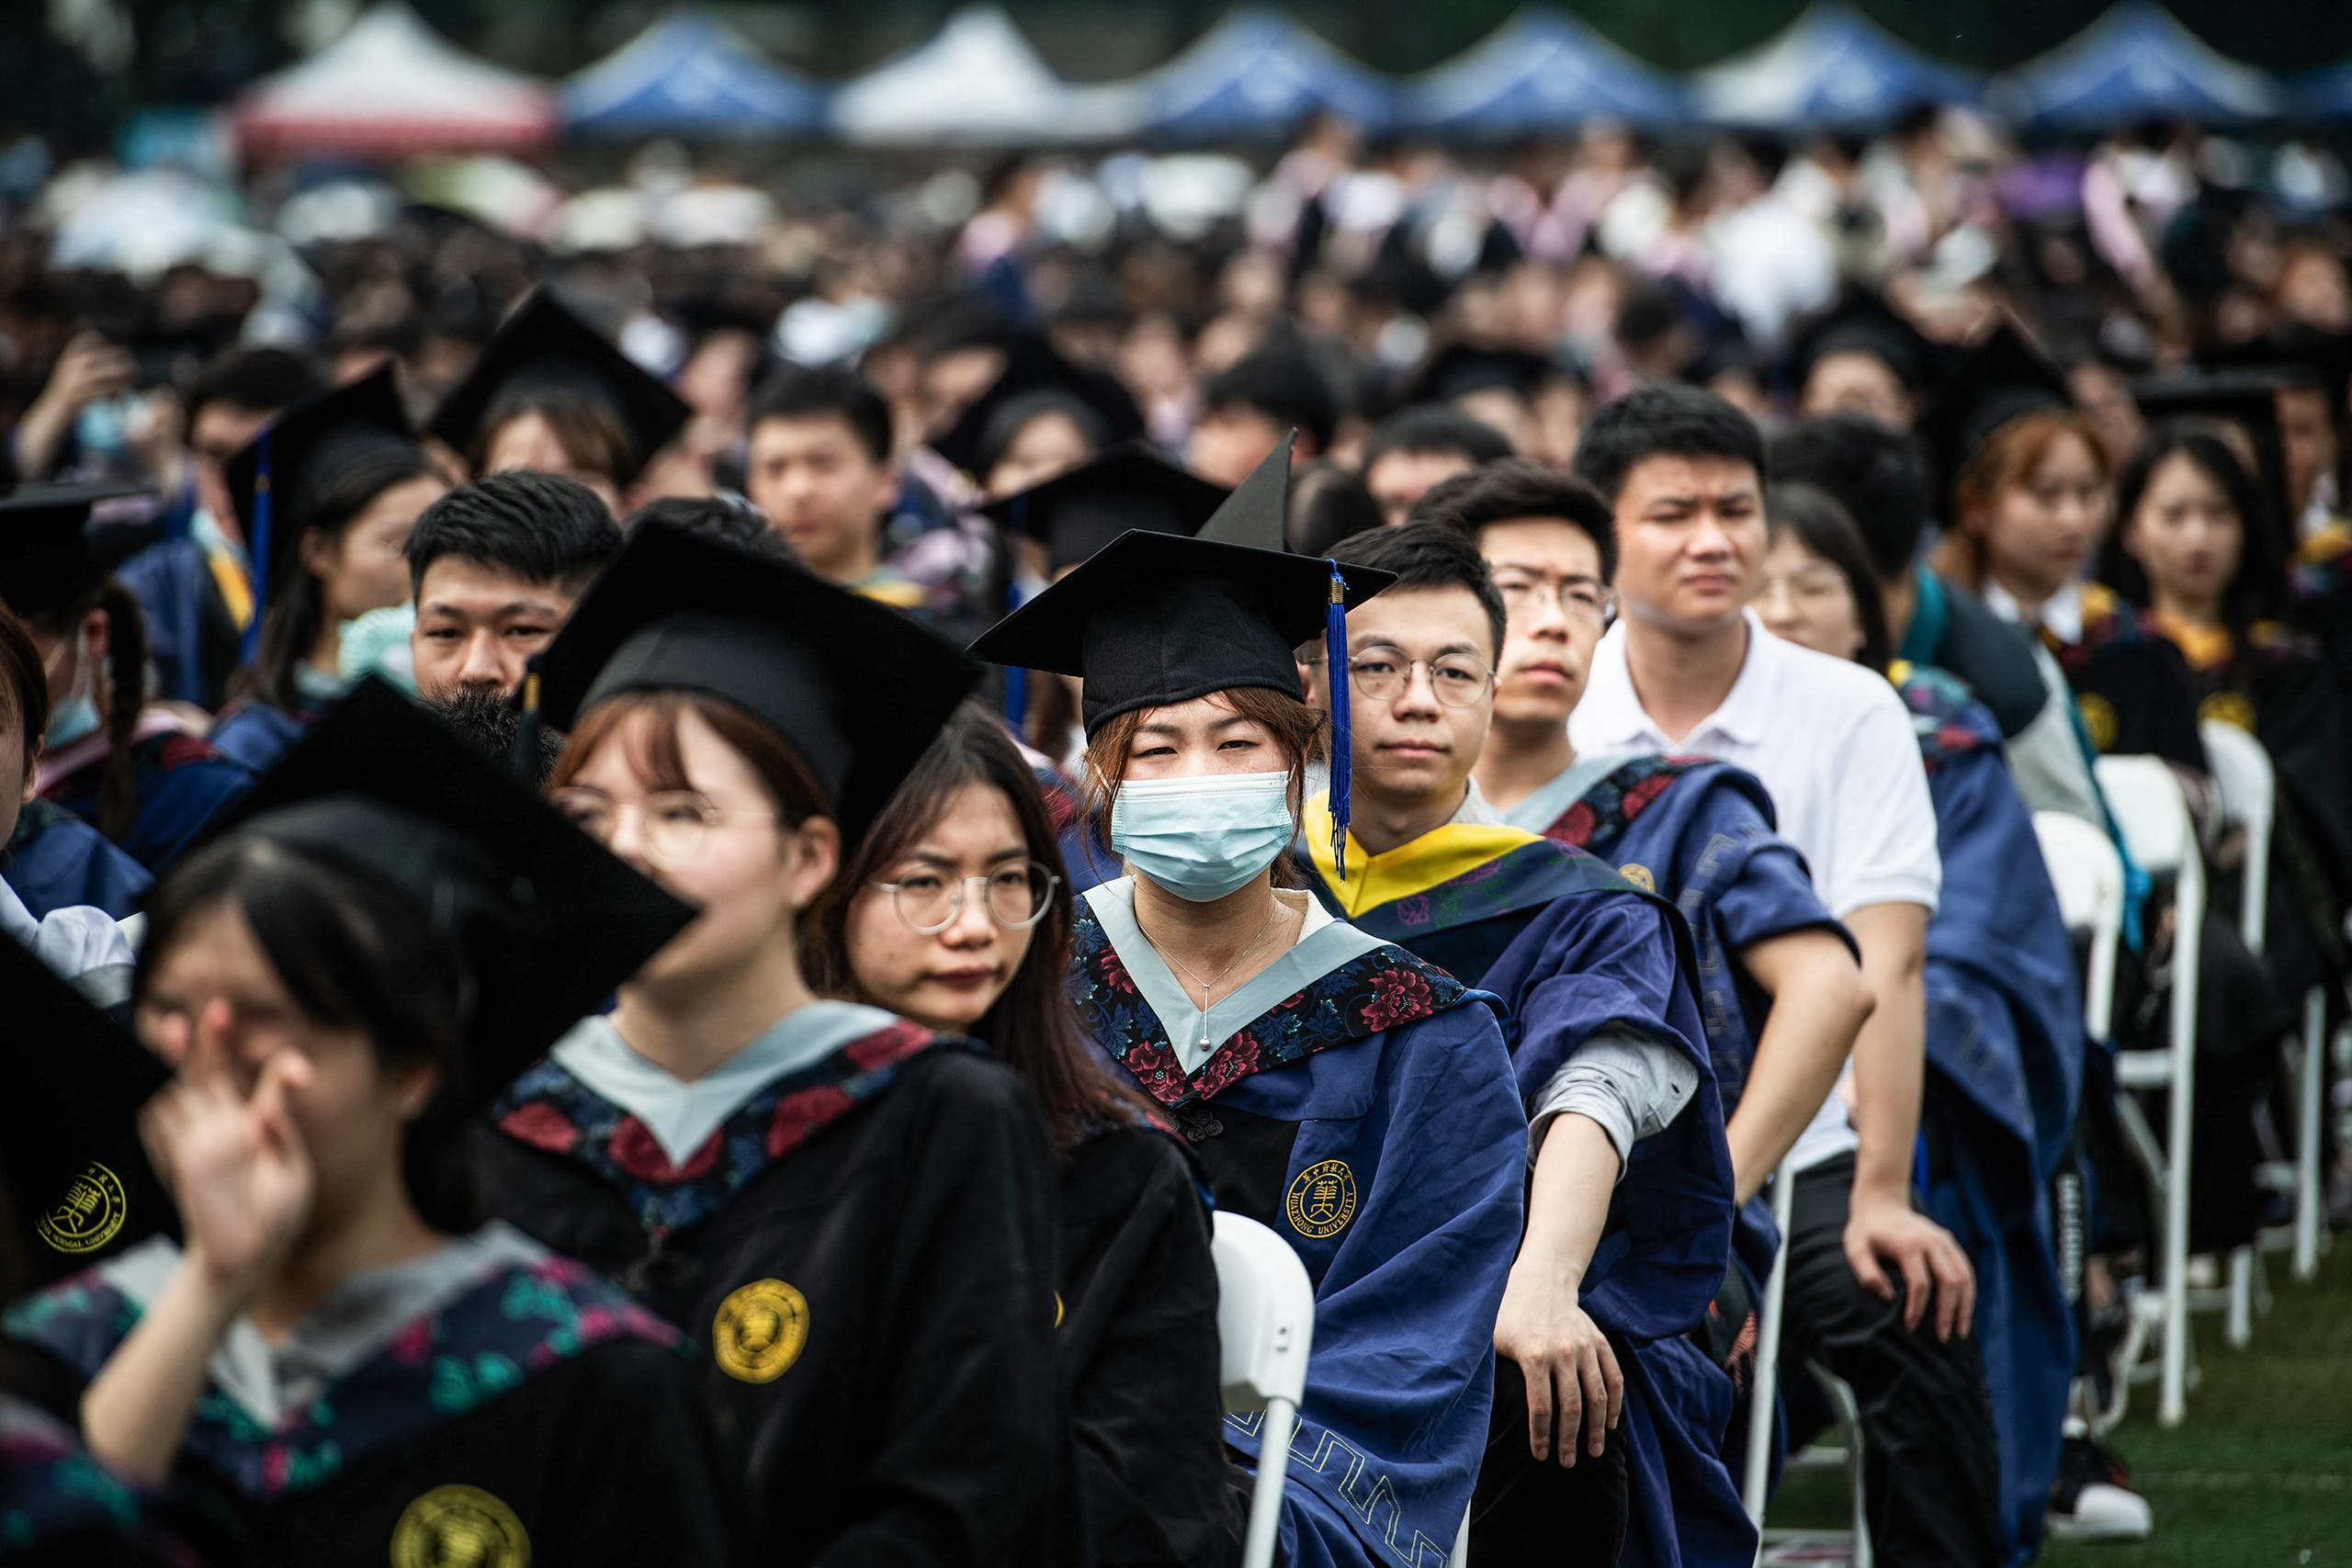 This photo taken on June 13, 2021 shows nearly 11,000 graduates, including more than 2000 students who could not attend the graduation ceremony last year due to the COVID-19 coronavirus outbreak, attending a graduation ceremony at Central China Normal University in Wuhan, in China's central Hubei province. (AFP)